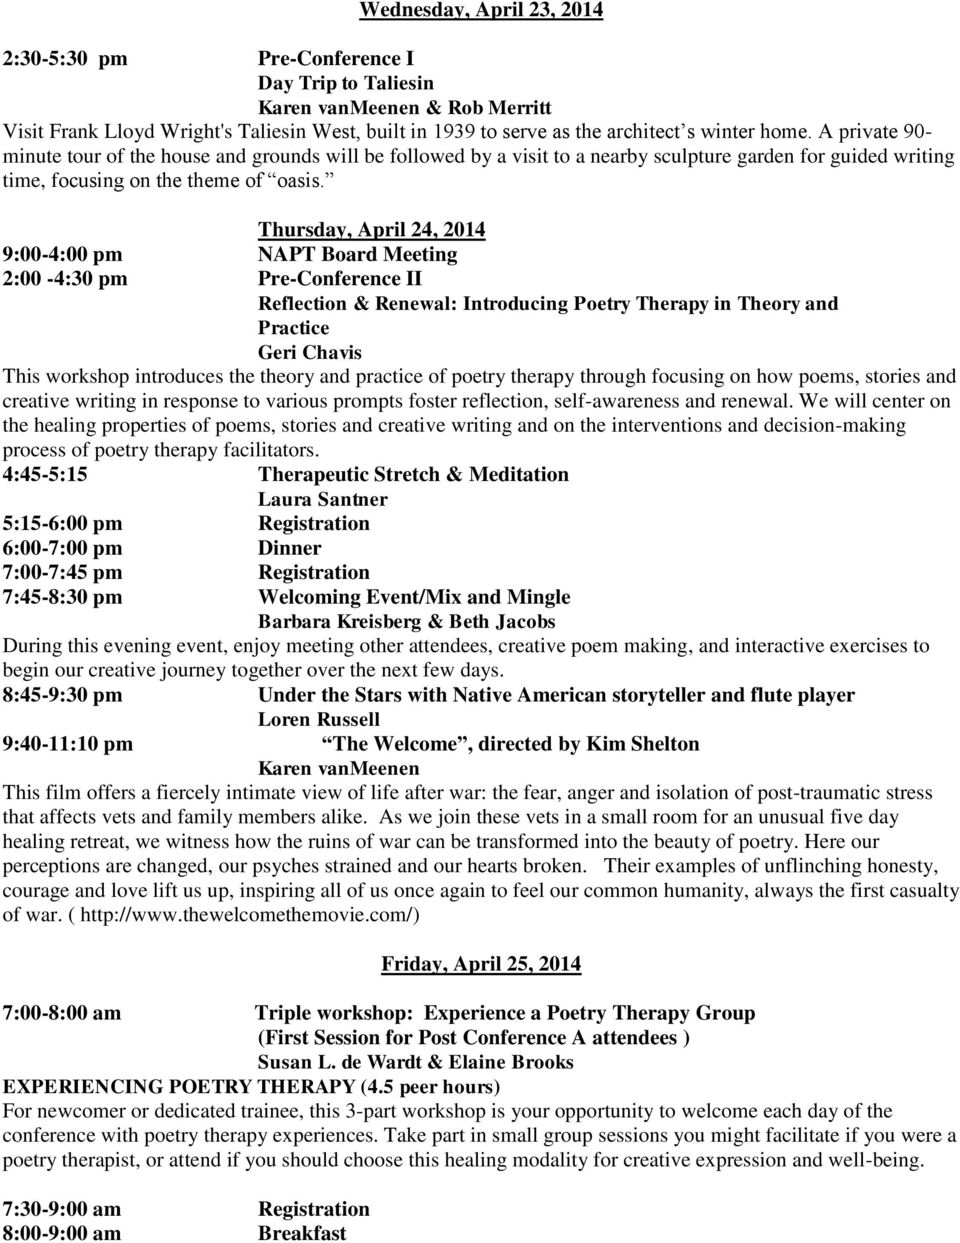 Thursday, April 24, 2014 9:00-4:00 pm NAPT Board Meeting 2:00-4:30 pm Pre-Conference II Reflection & Renewal: Introducing Poetry Therapy in Theory and Practice Geri Chavis This workshop introduces